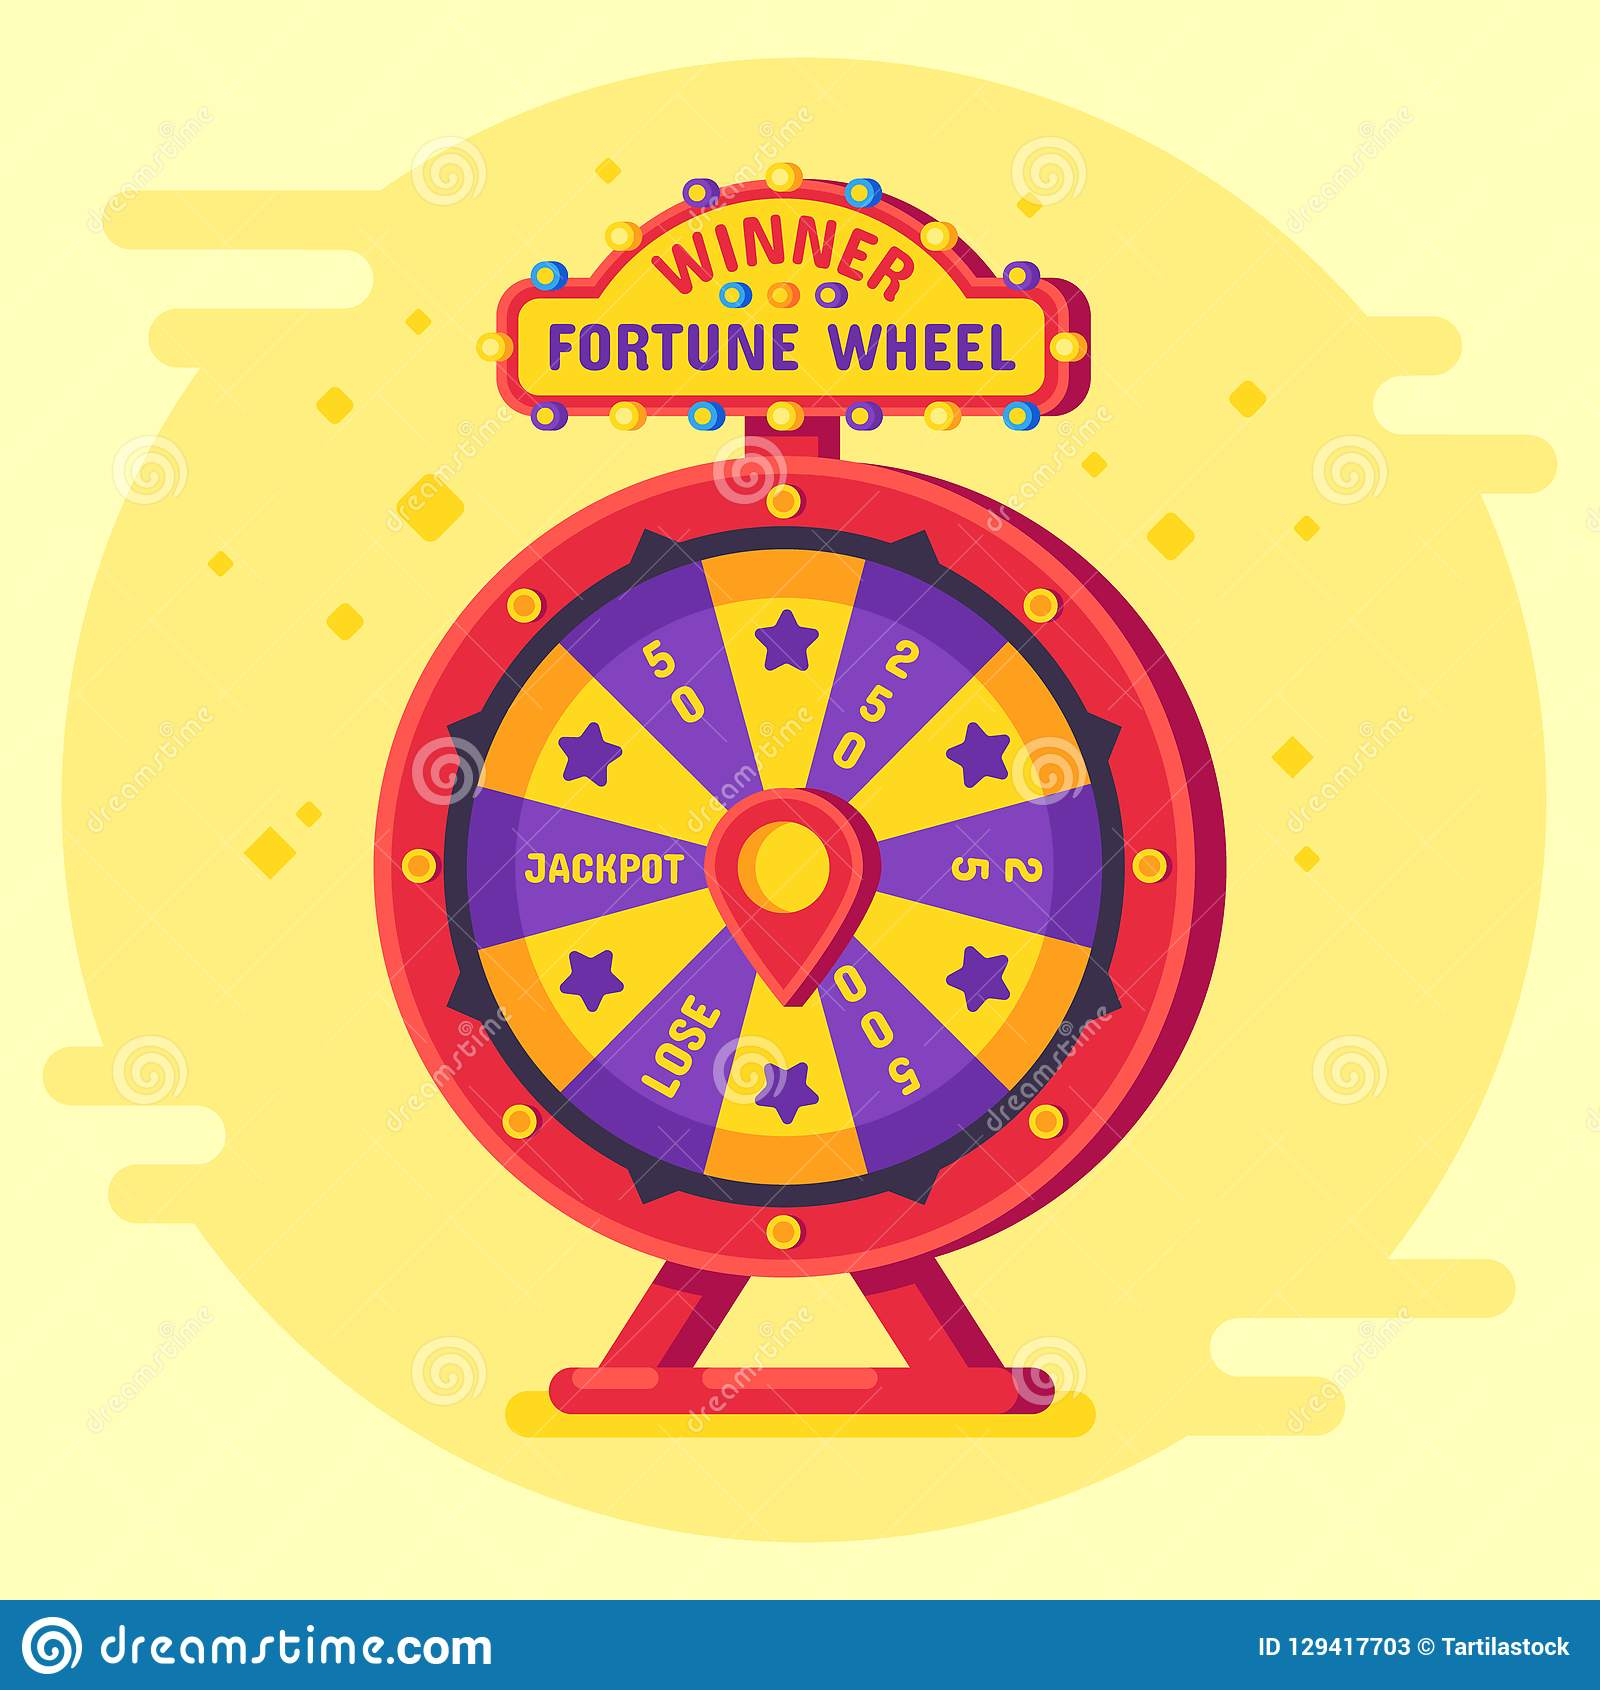 Fortune Wheel Winner Lucky Chance Spin Wheels Game Modern Turning Money Roulette And Gambling Vector Flat Poster Stock Vector Illustration Of Bankruptcy Failure 129417703